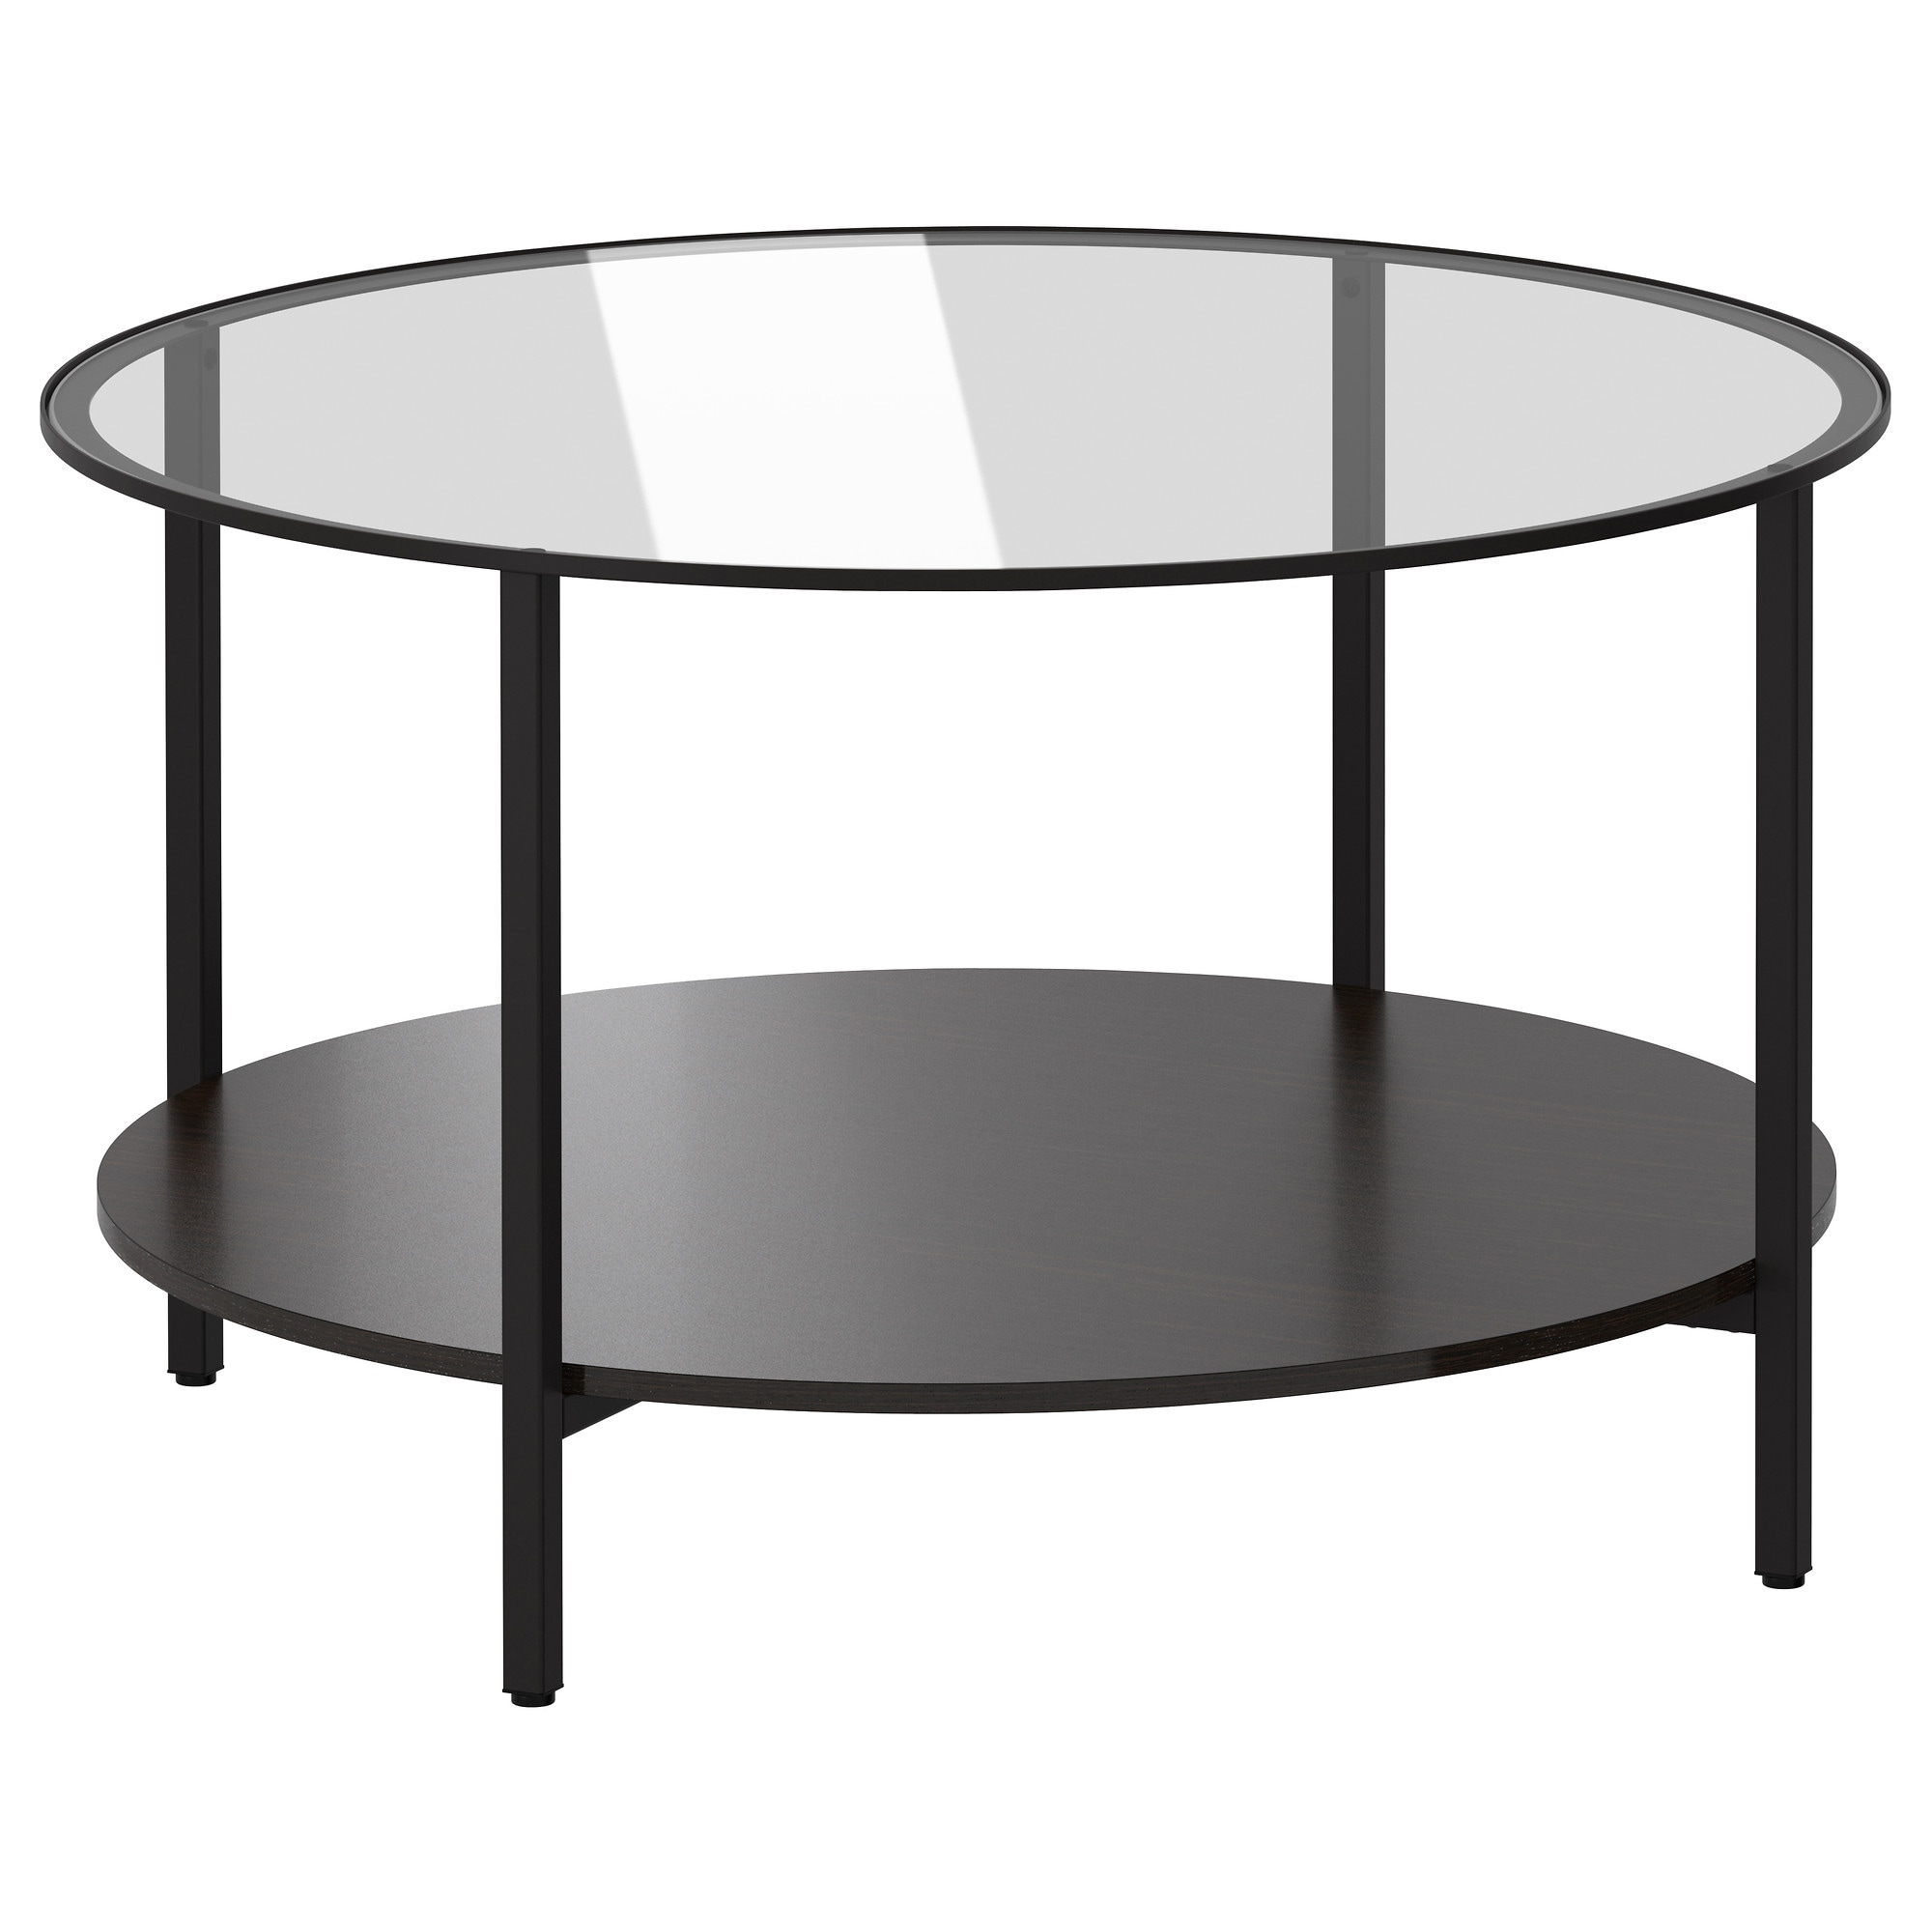 VITTSJ– Coffee table white glass IKEA